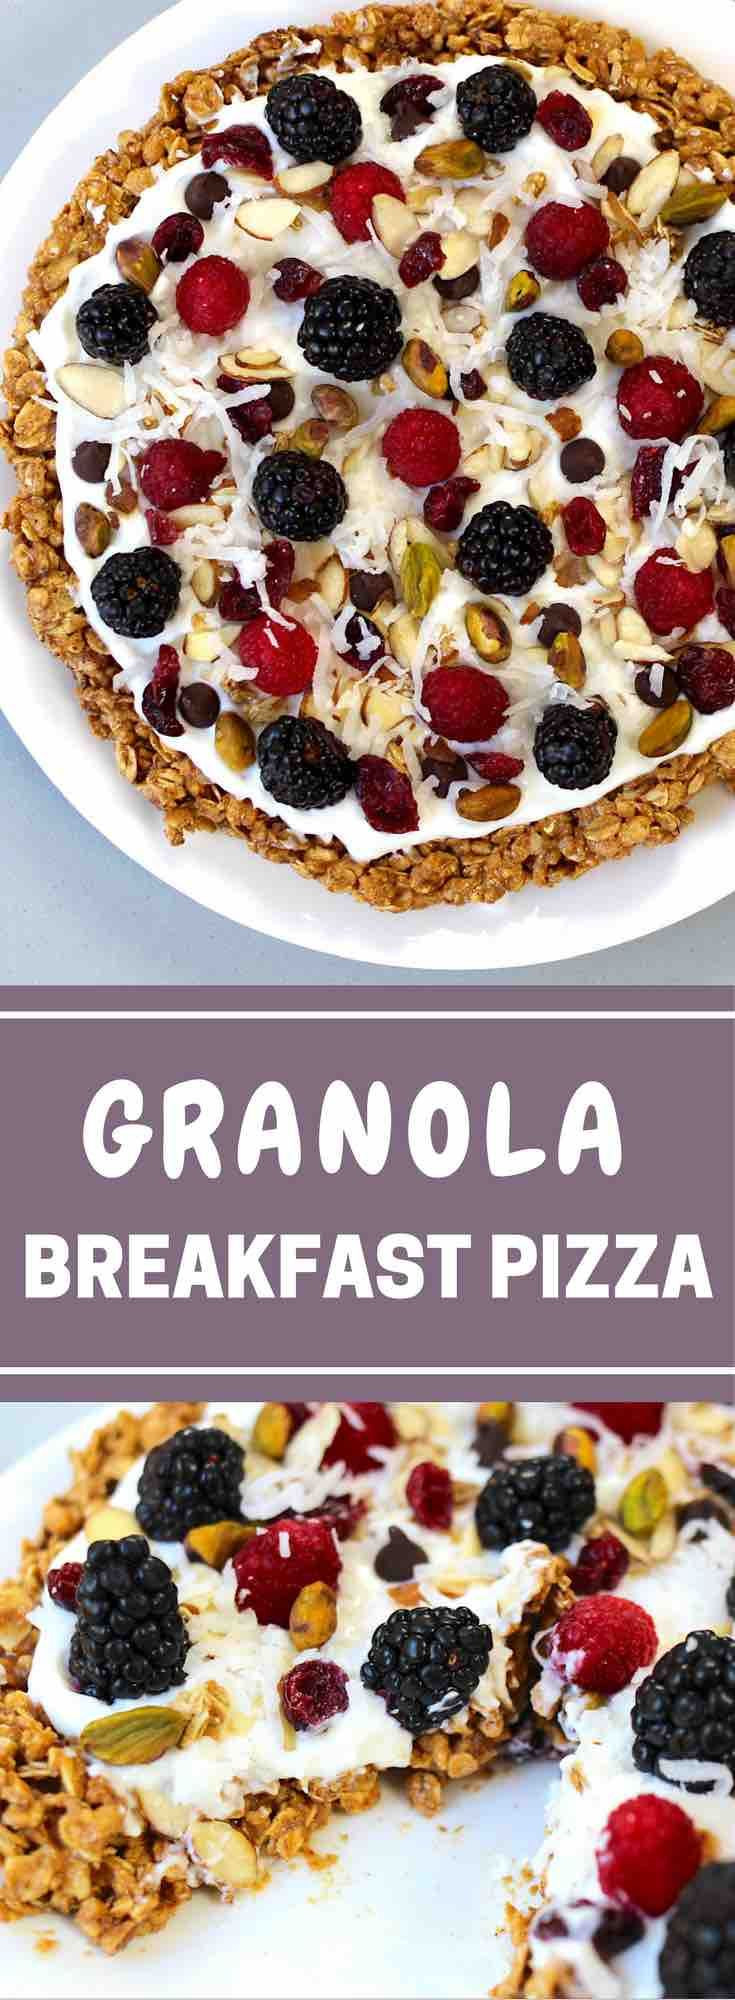 Healthy Breakfast Pizza  15 best ideas about Healthy Breakfasts on Pinterest